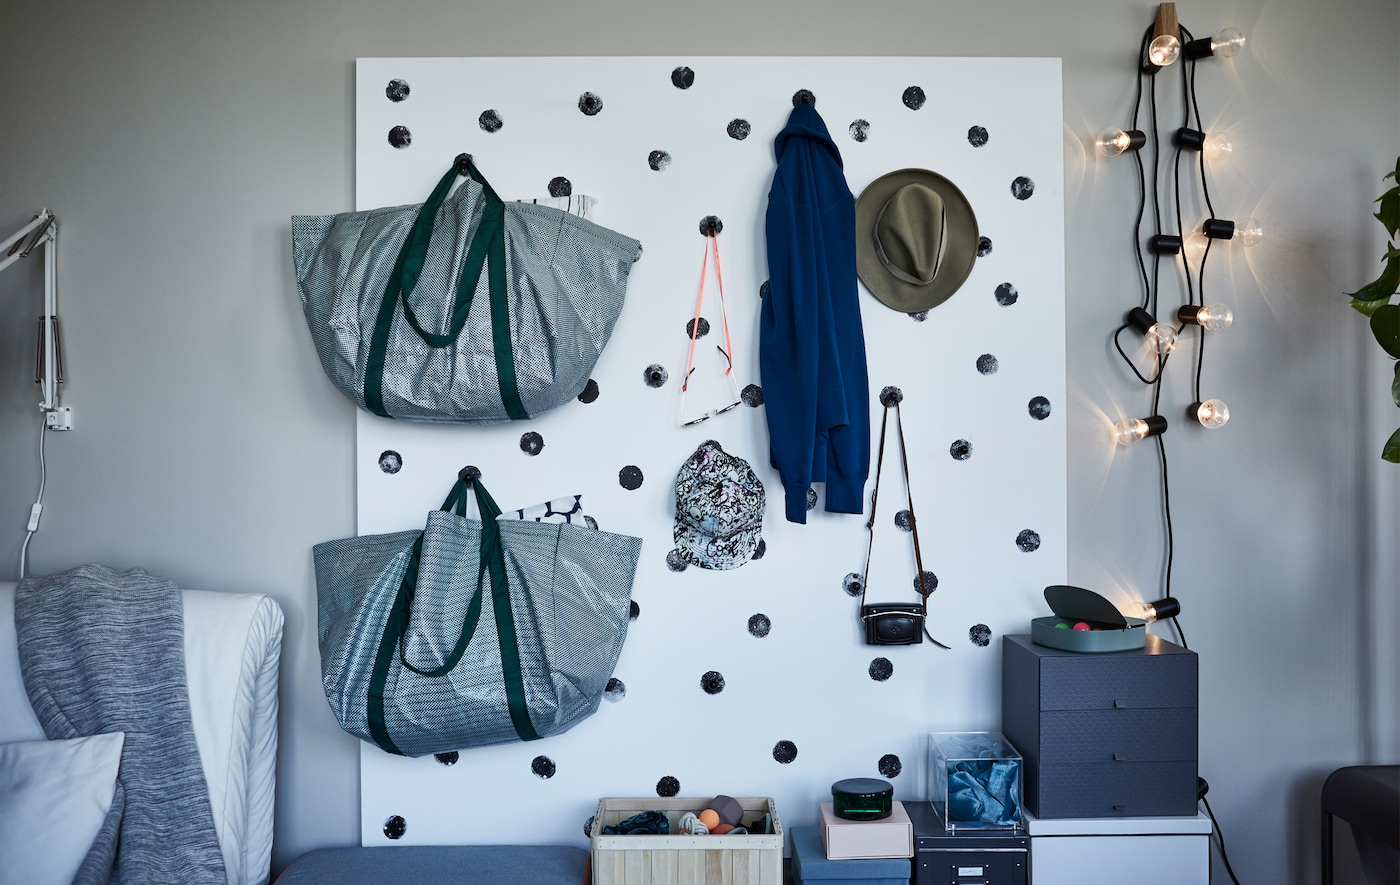 From hanging clothes to bedding, a storage wall is ideal for small space living. All you need is wood, some sturdy knobs, and paint.